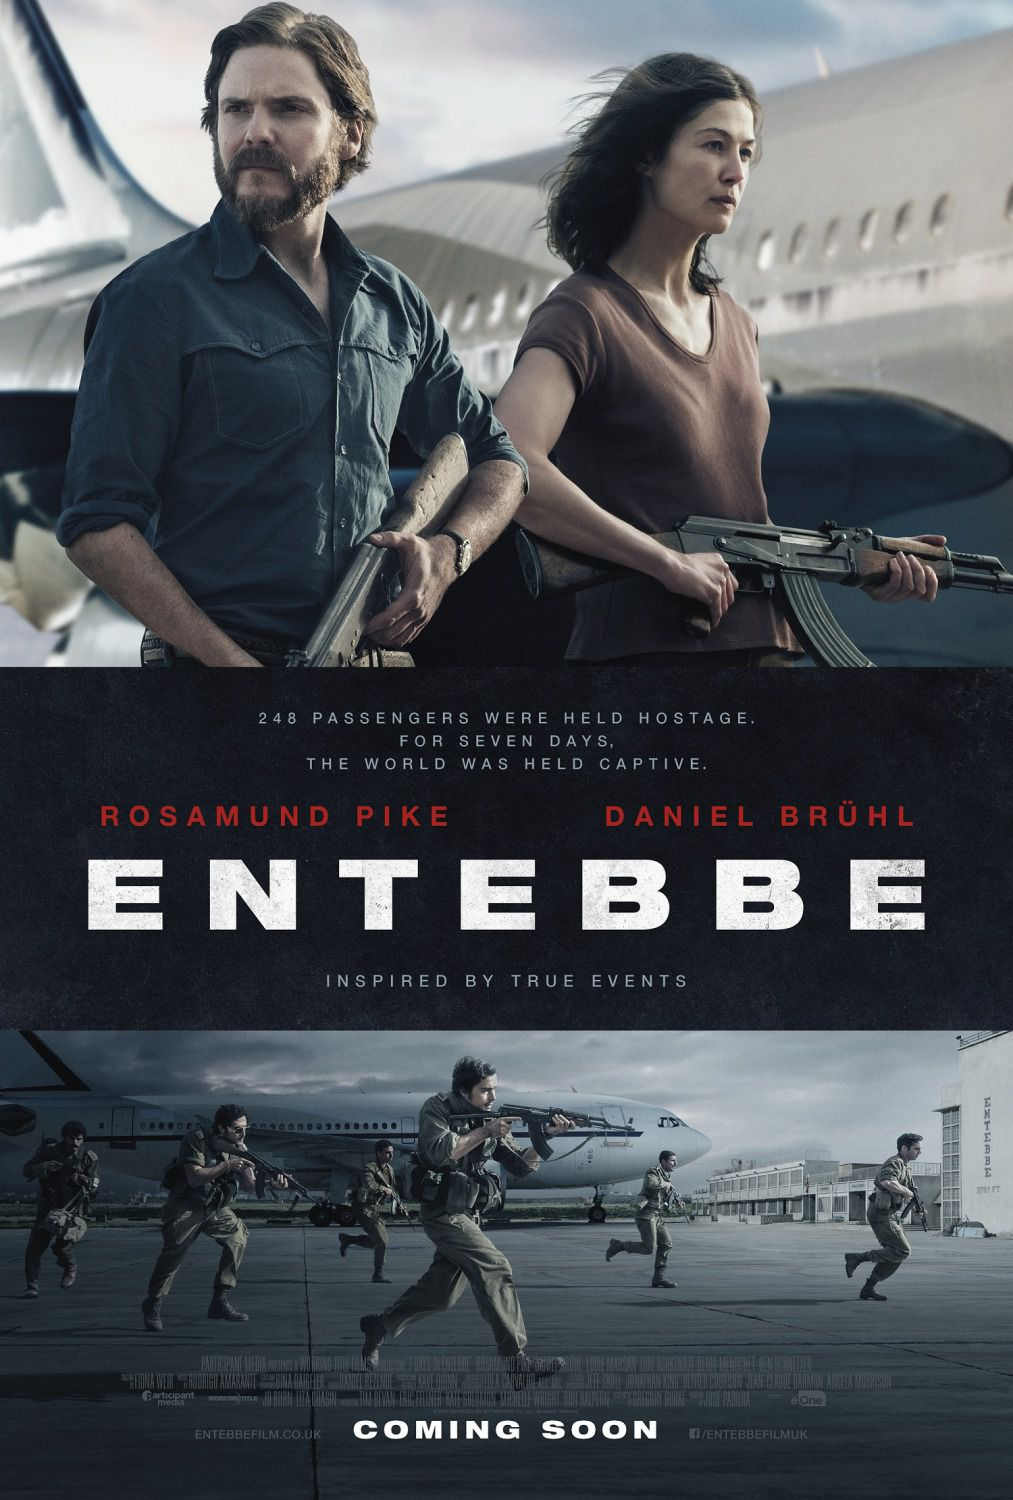 7 Days in Entebbe - 248 passengers were held hostage, for seven days, the world was held captive - Cast: Rosamund Pike, Daniel Bruhl - film poster